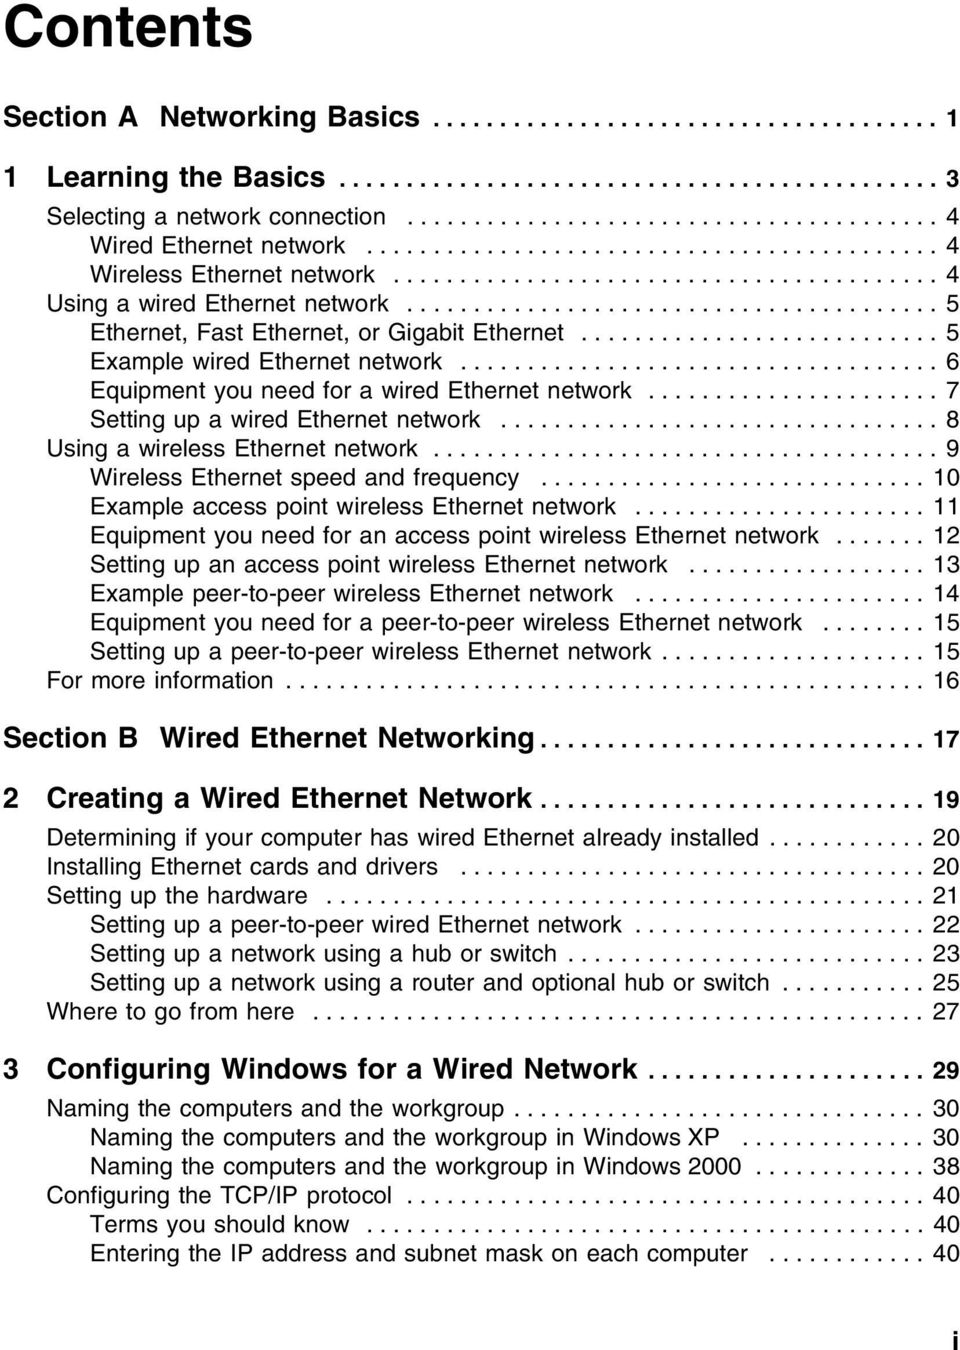 ....................................... 5 Ethernet, Fast Ethernet, or Gigabit Ethernet........................... 5 Example wired Ethernet network.................................... 6 Equipment you need for a wired Ethernet network.